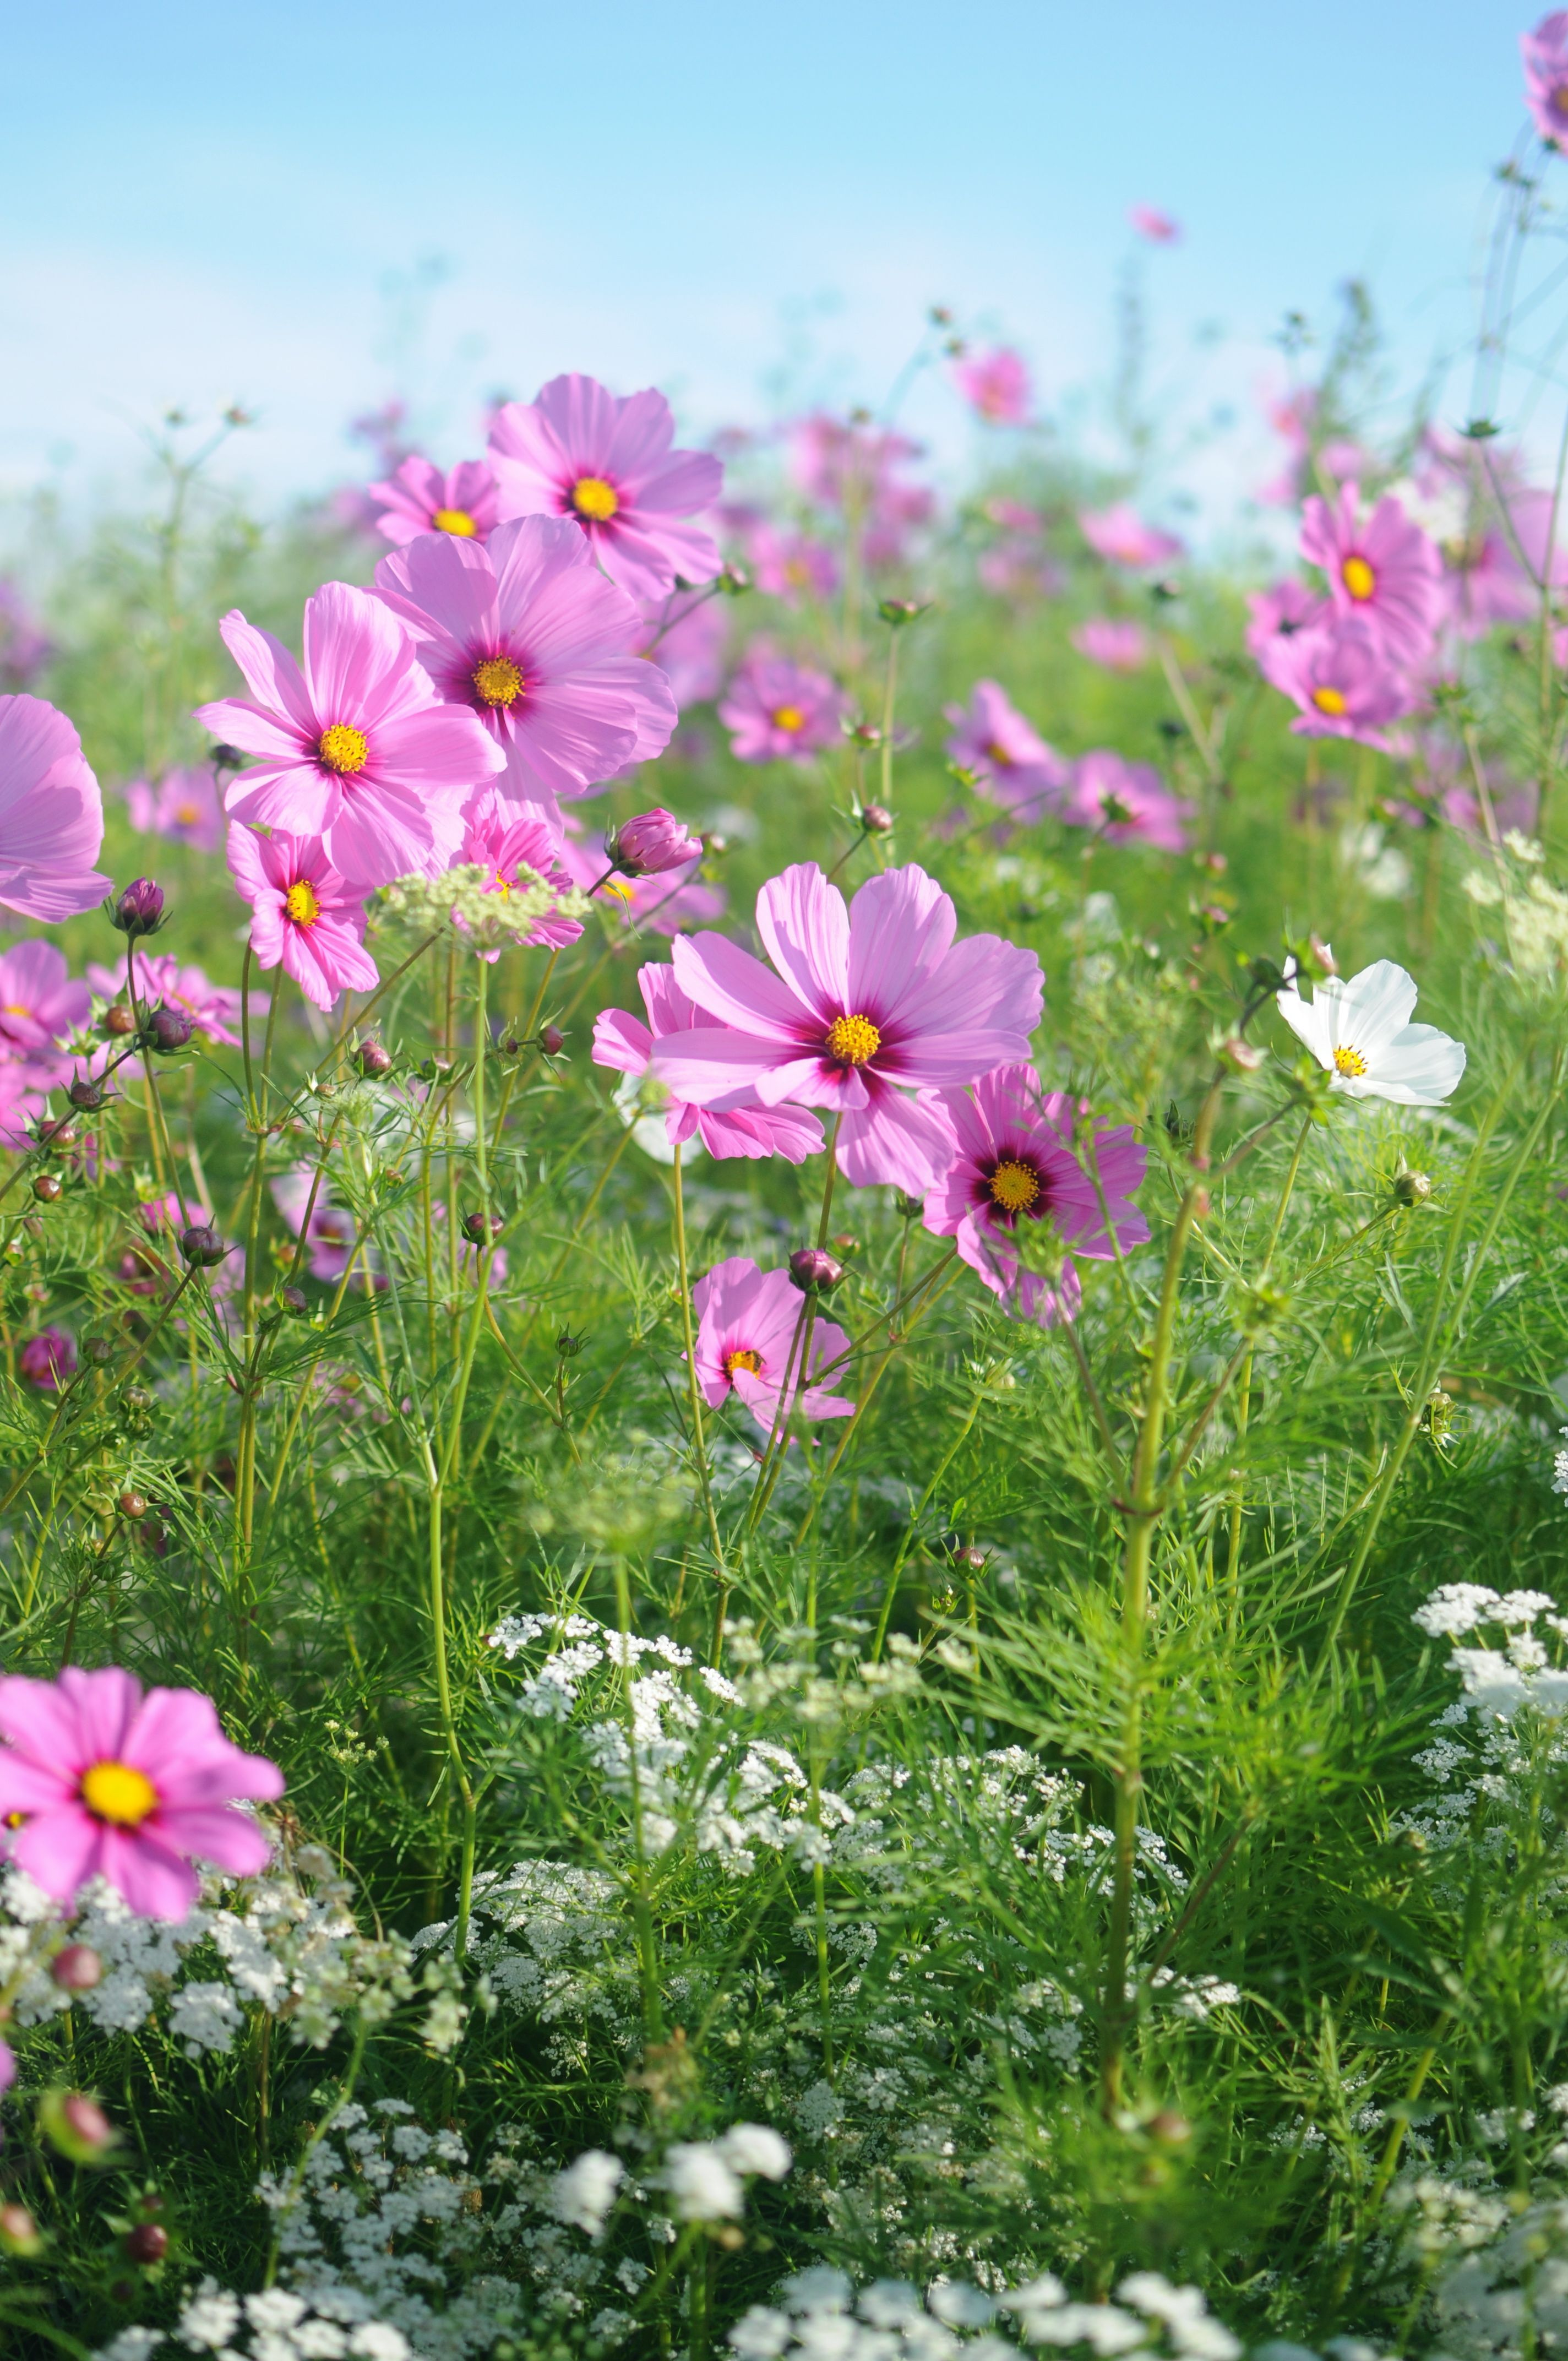 Garden Idea Plant A Meadow With Images Beautiful Flowers Cosmos Flowers Plants